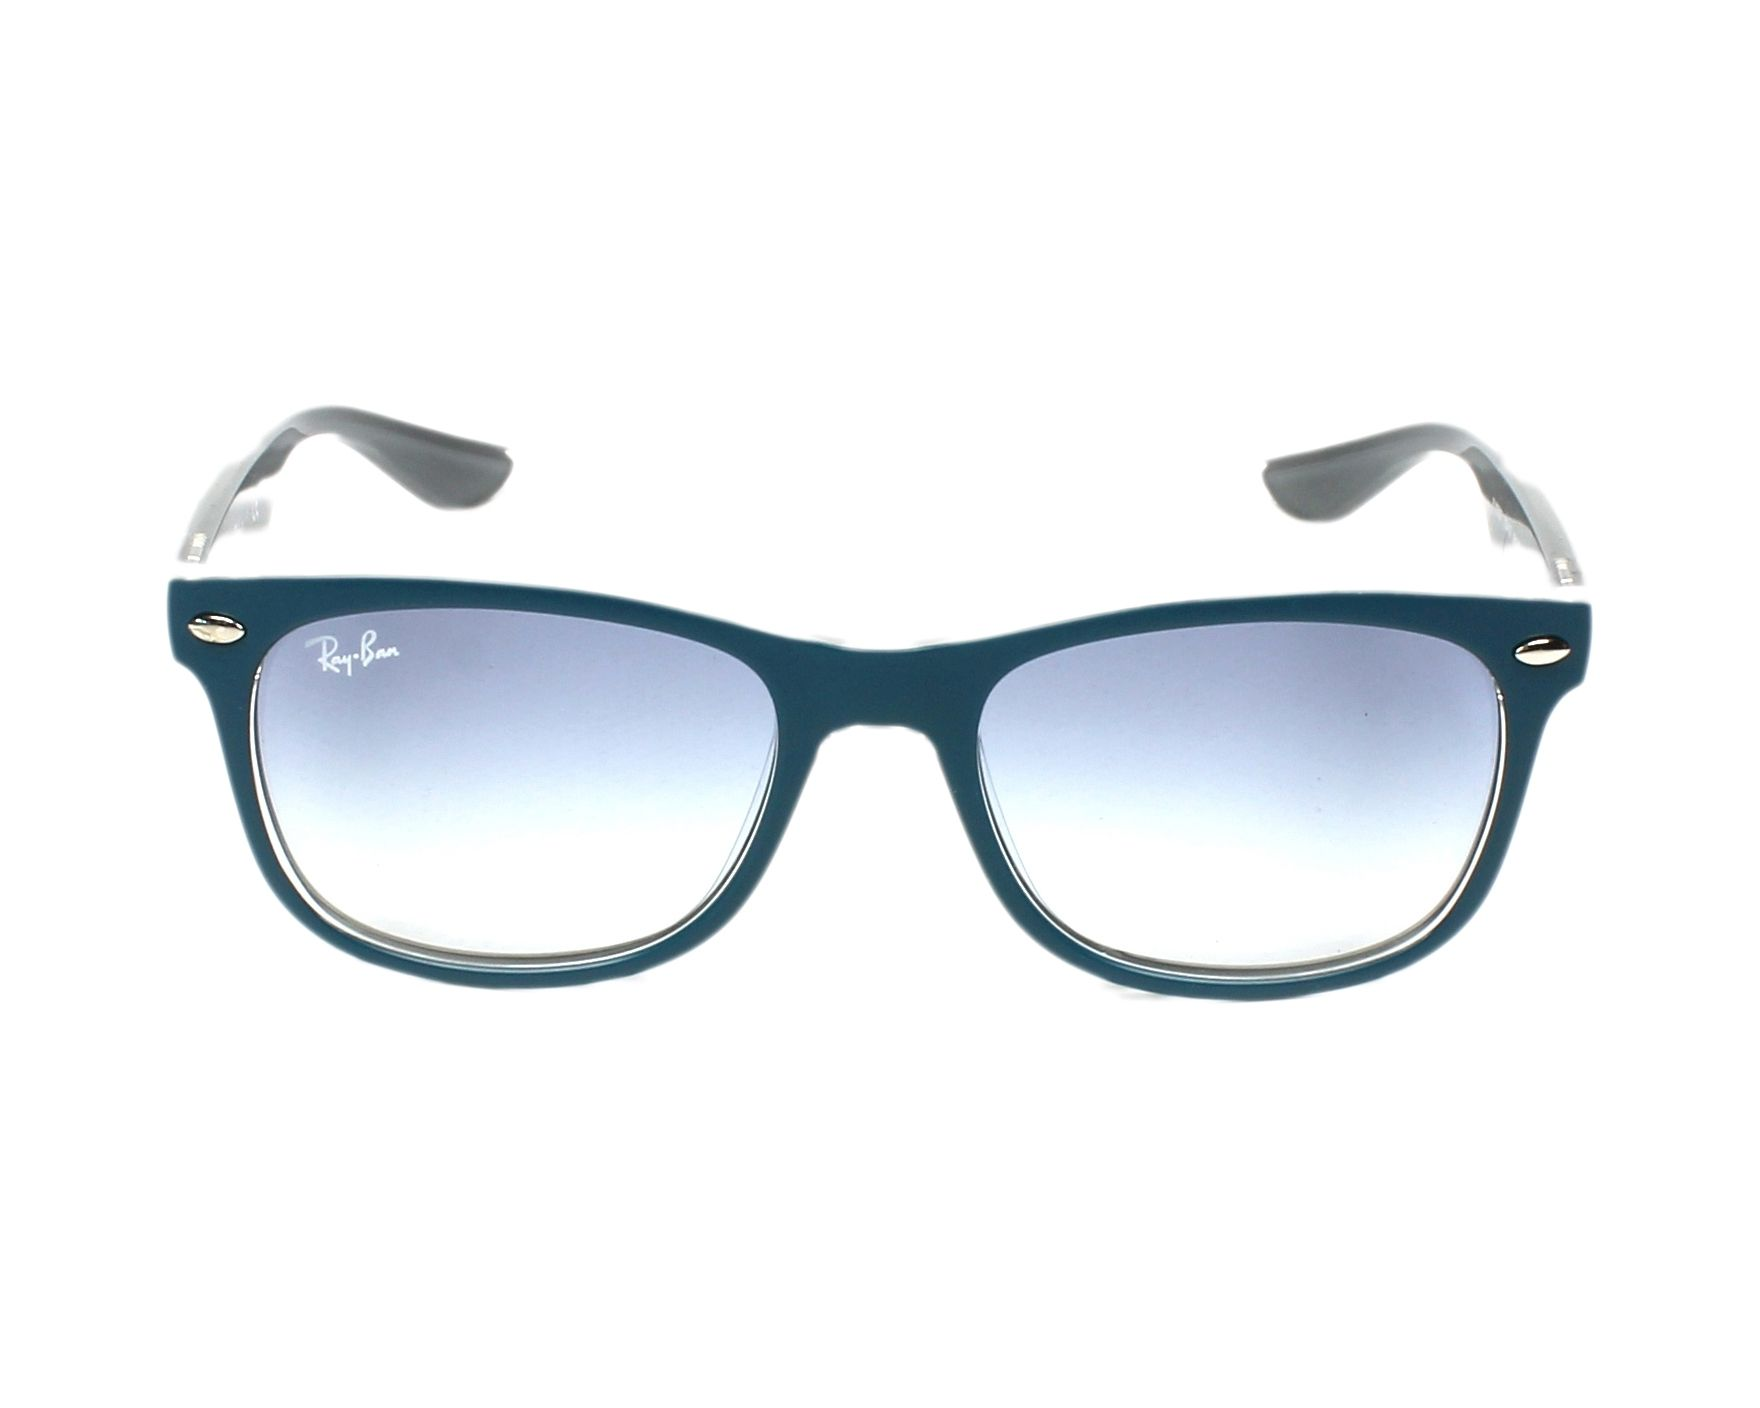 Ray-Ban Junior RJ9052S 703419 48 mm/16 mm PMWnPuG